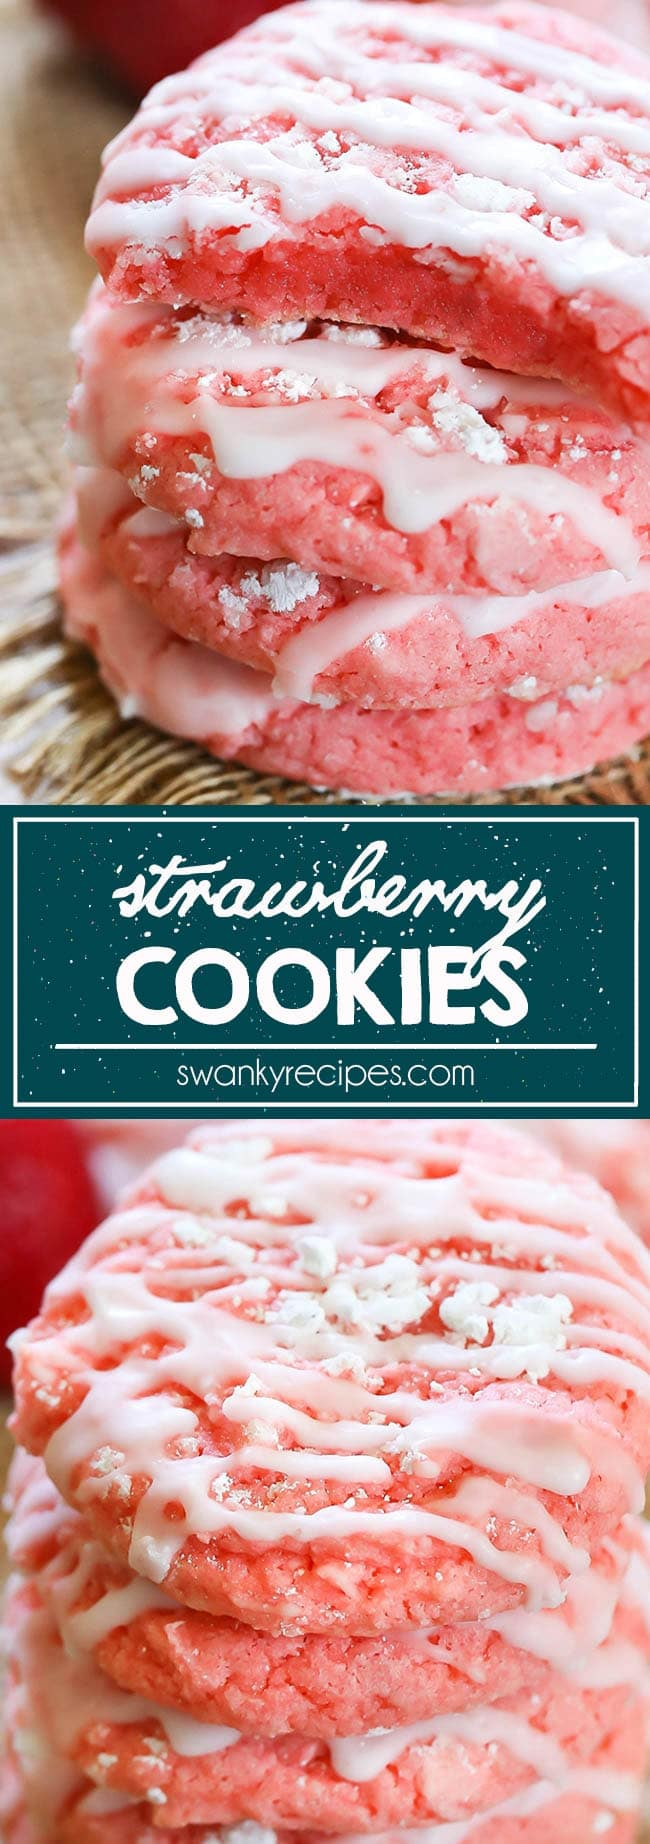 Strawberry Cookies - The ultimate strawberry cookie recipe. Made easy with doctored up cake mix, these strawberry cookies are quick to make for dessert.